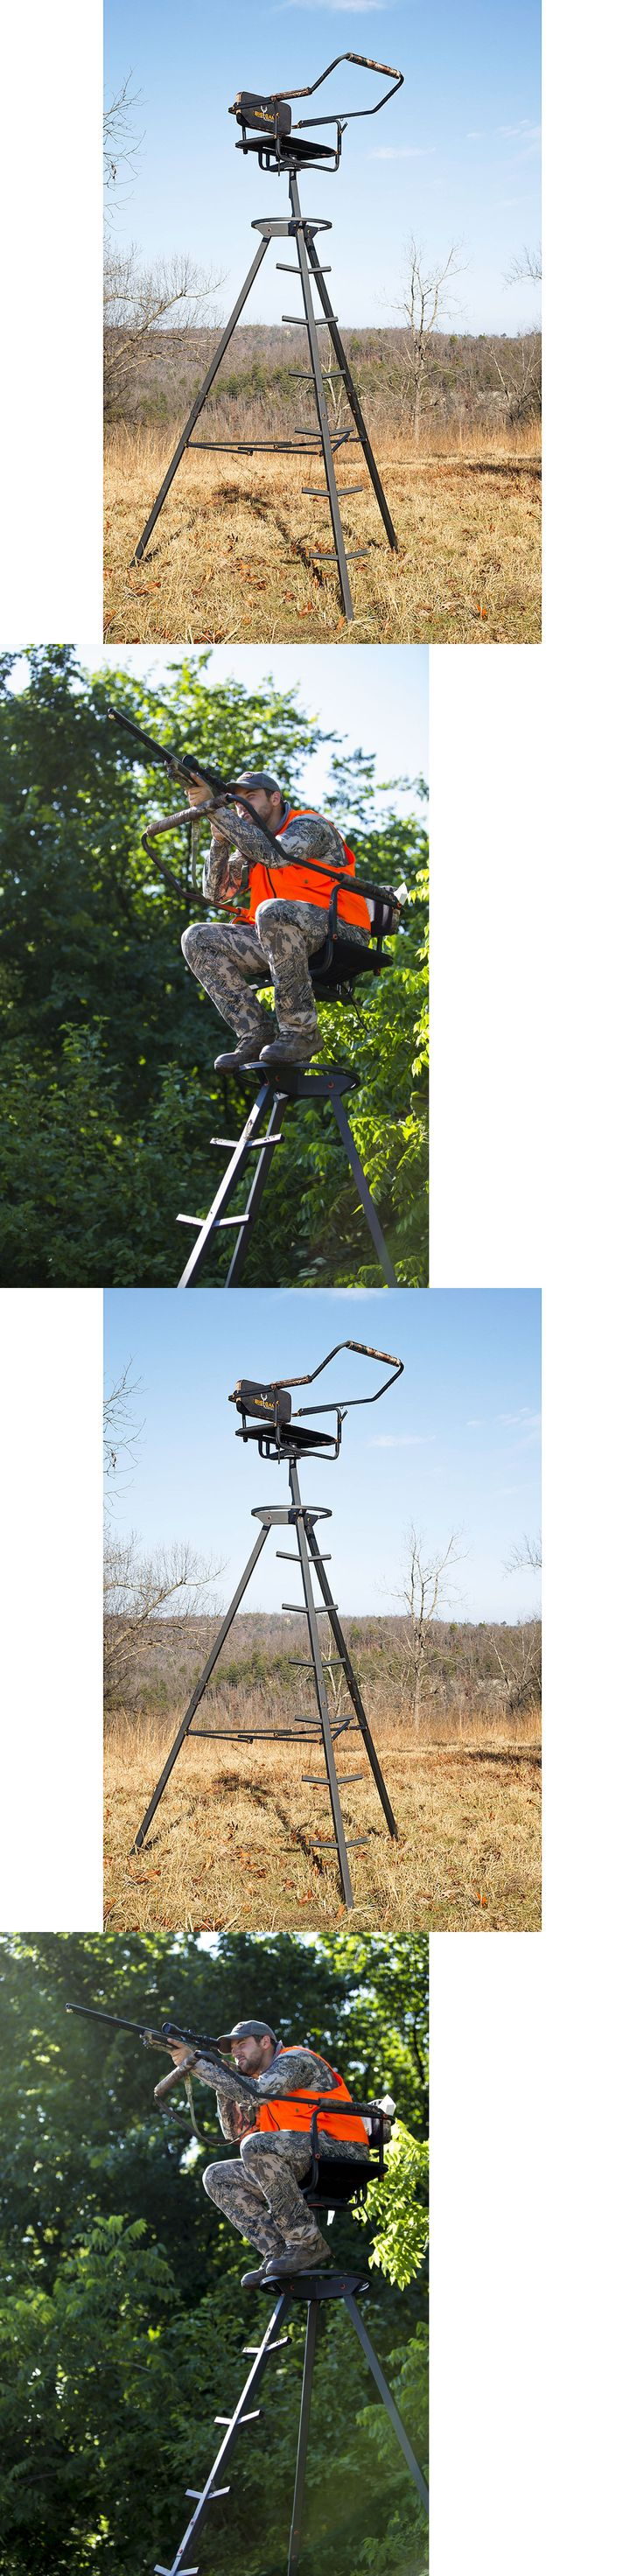 Tree Stands 52508: Hunting Tripod Stand 10 Portable Tower Game Deer Rifle Archery Bow Blind -> BUY IT NOW ONLY: $141.5 on eBay!